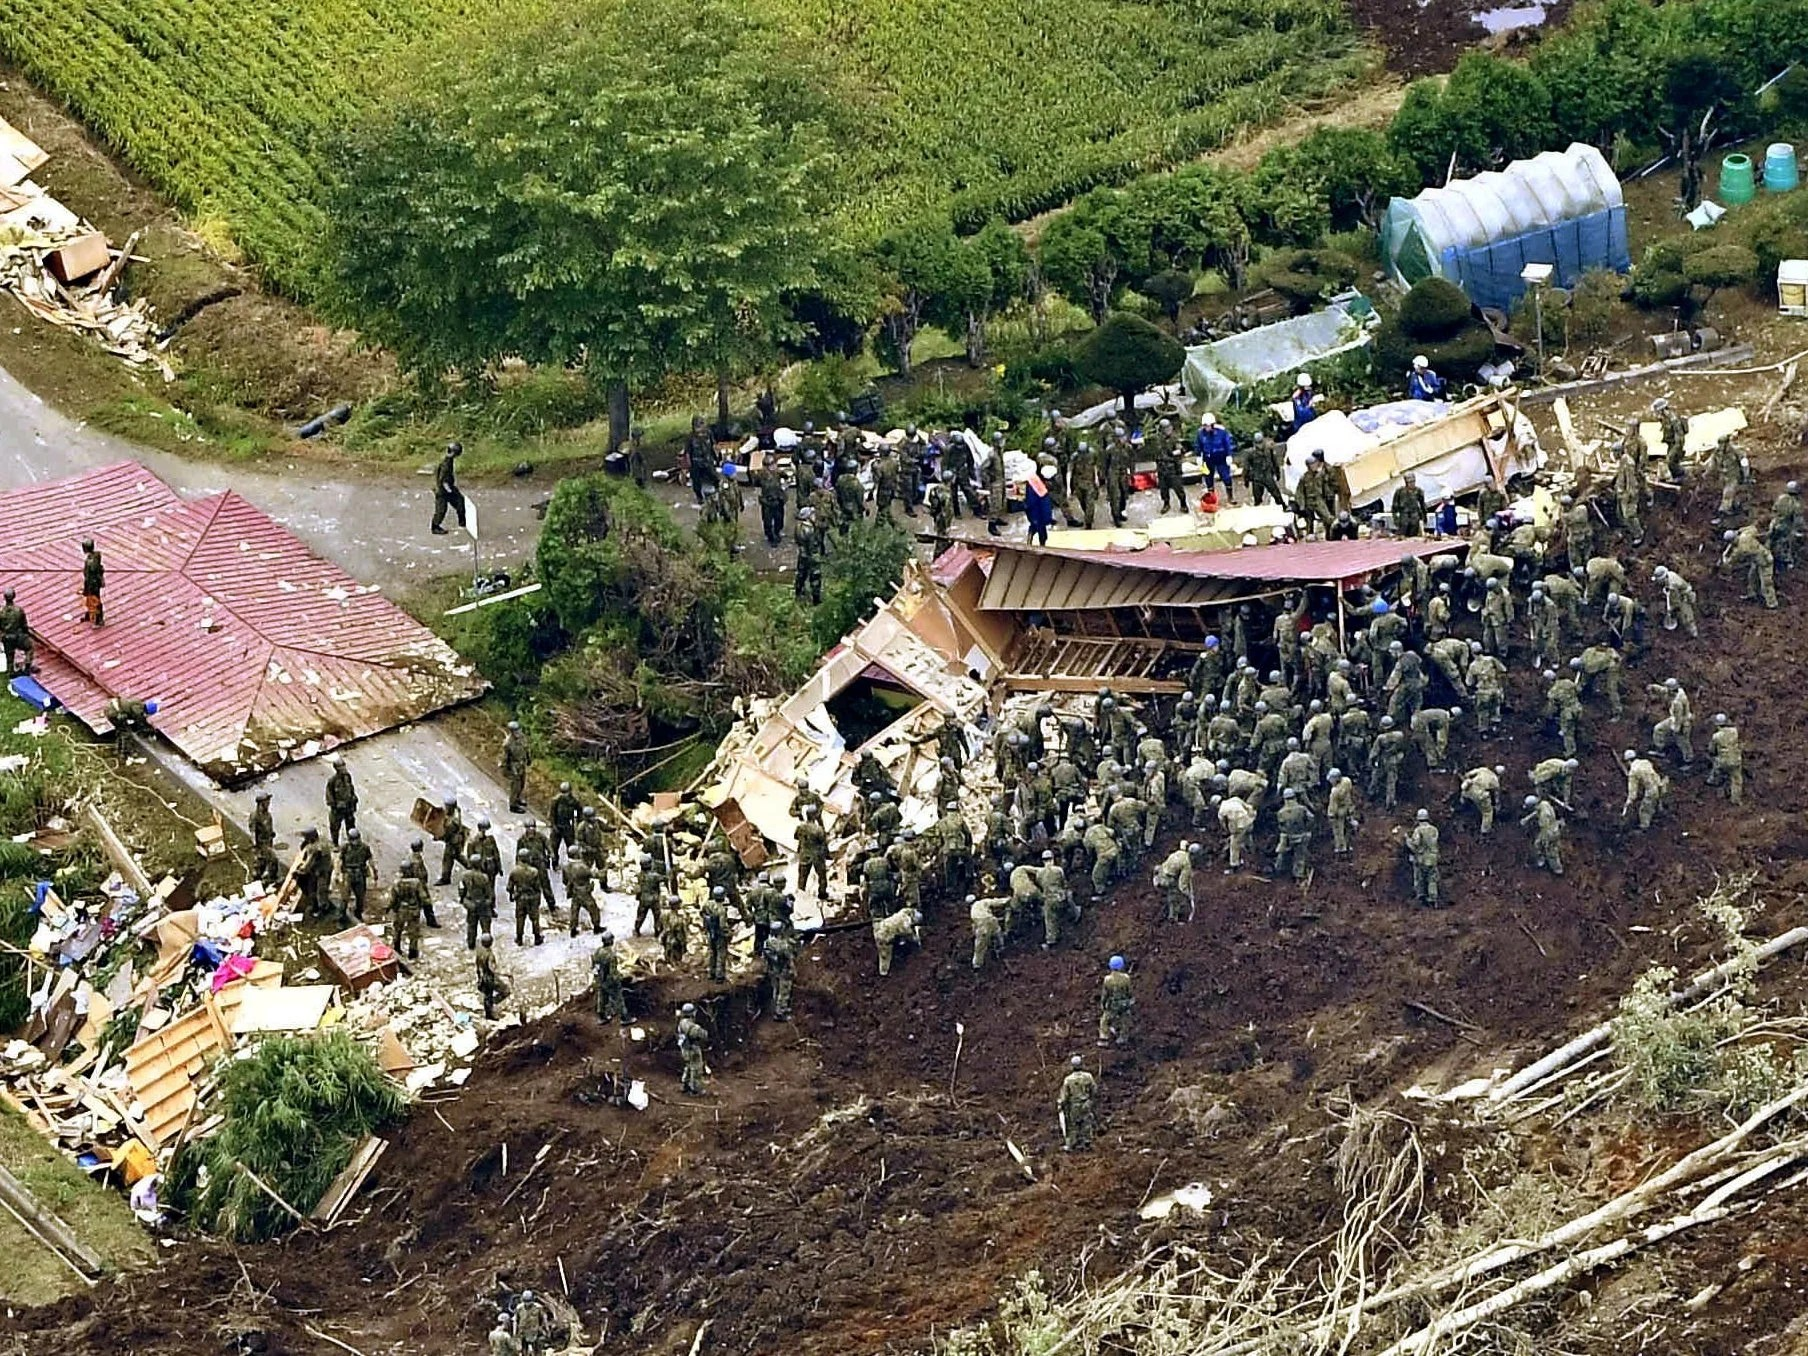 Japan Earthquake Toll Rises To 16 As Fears Grow For Dozens Missing